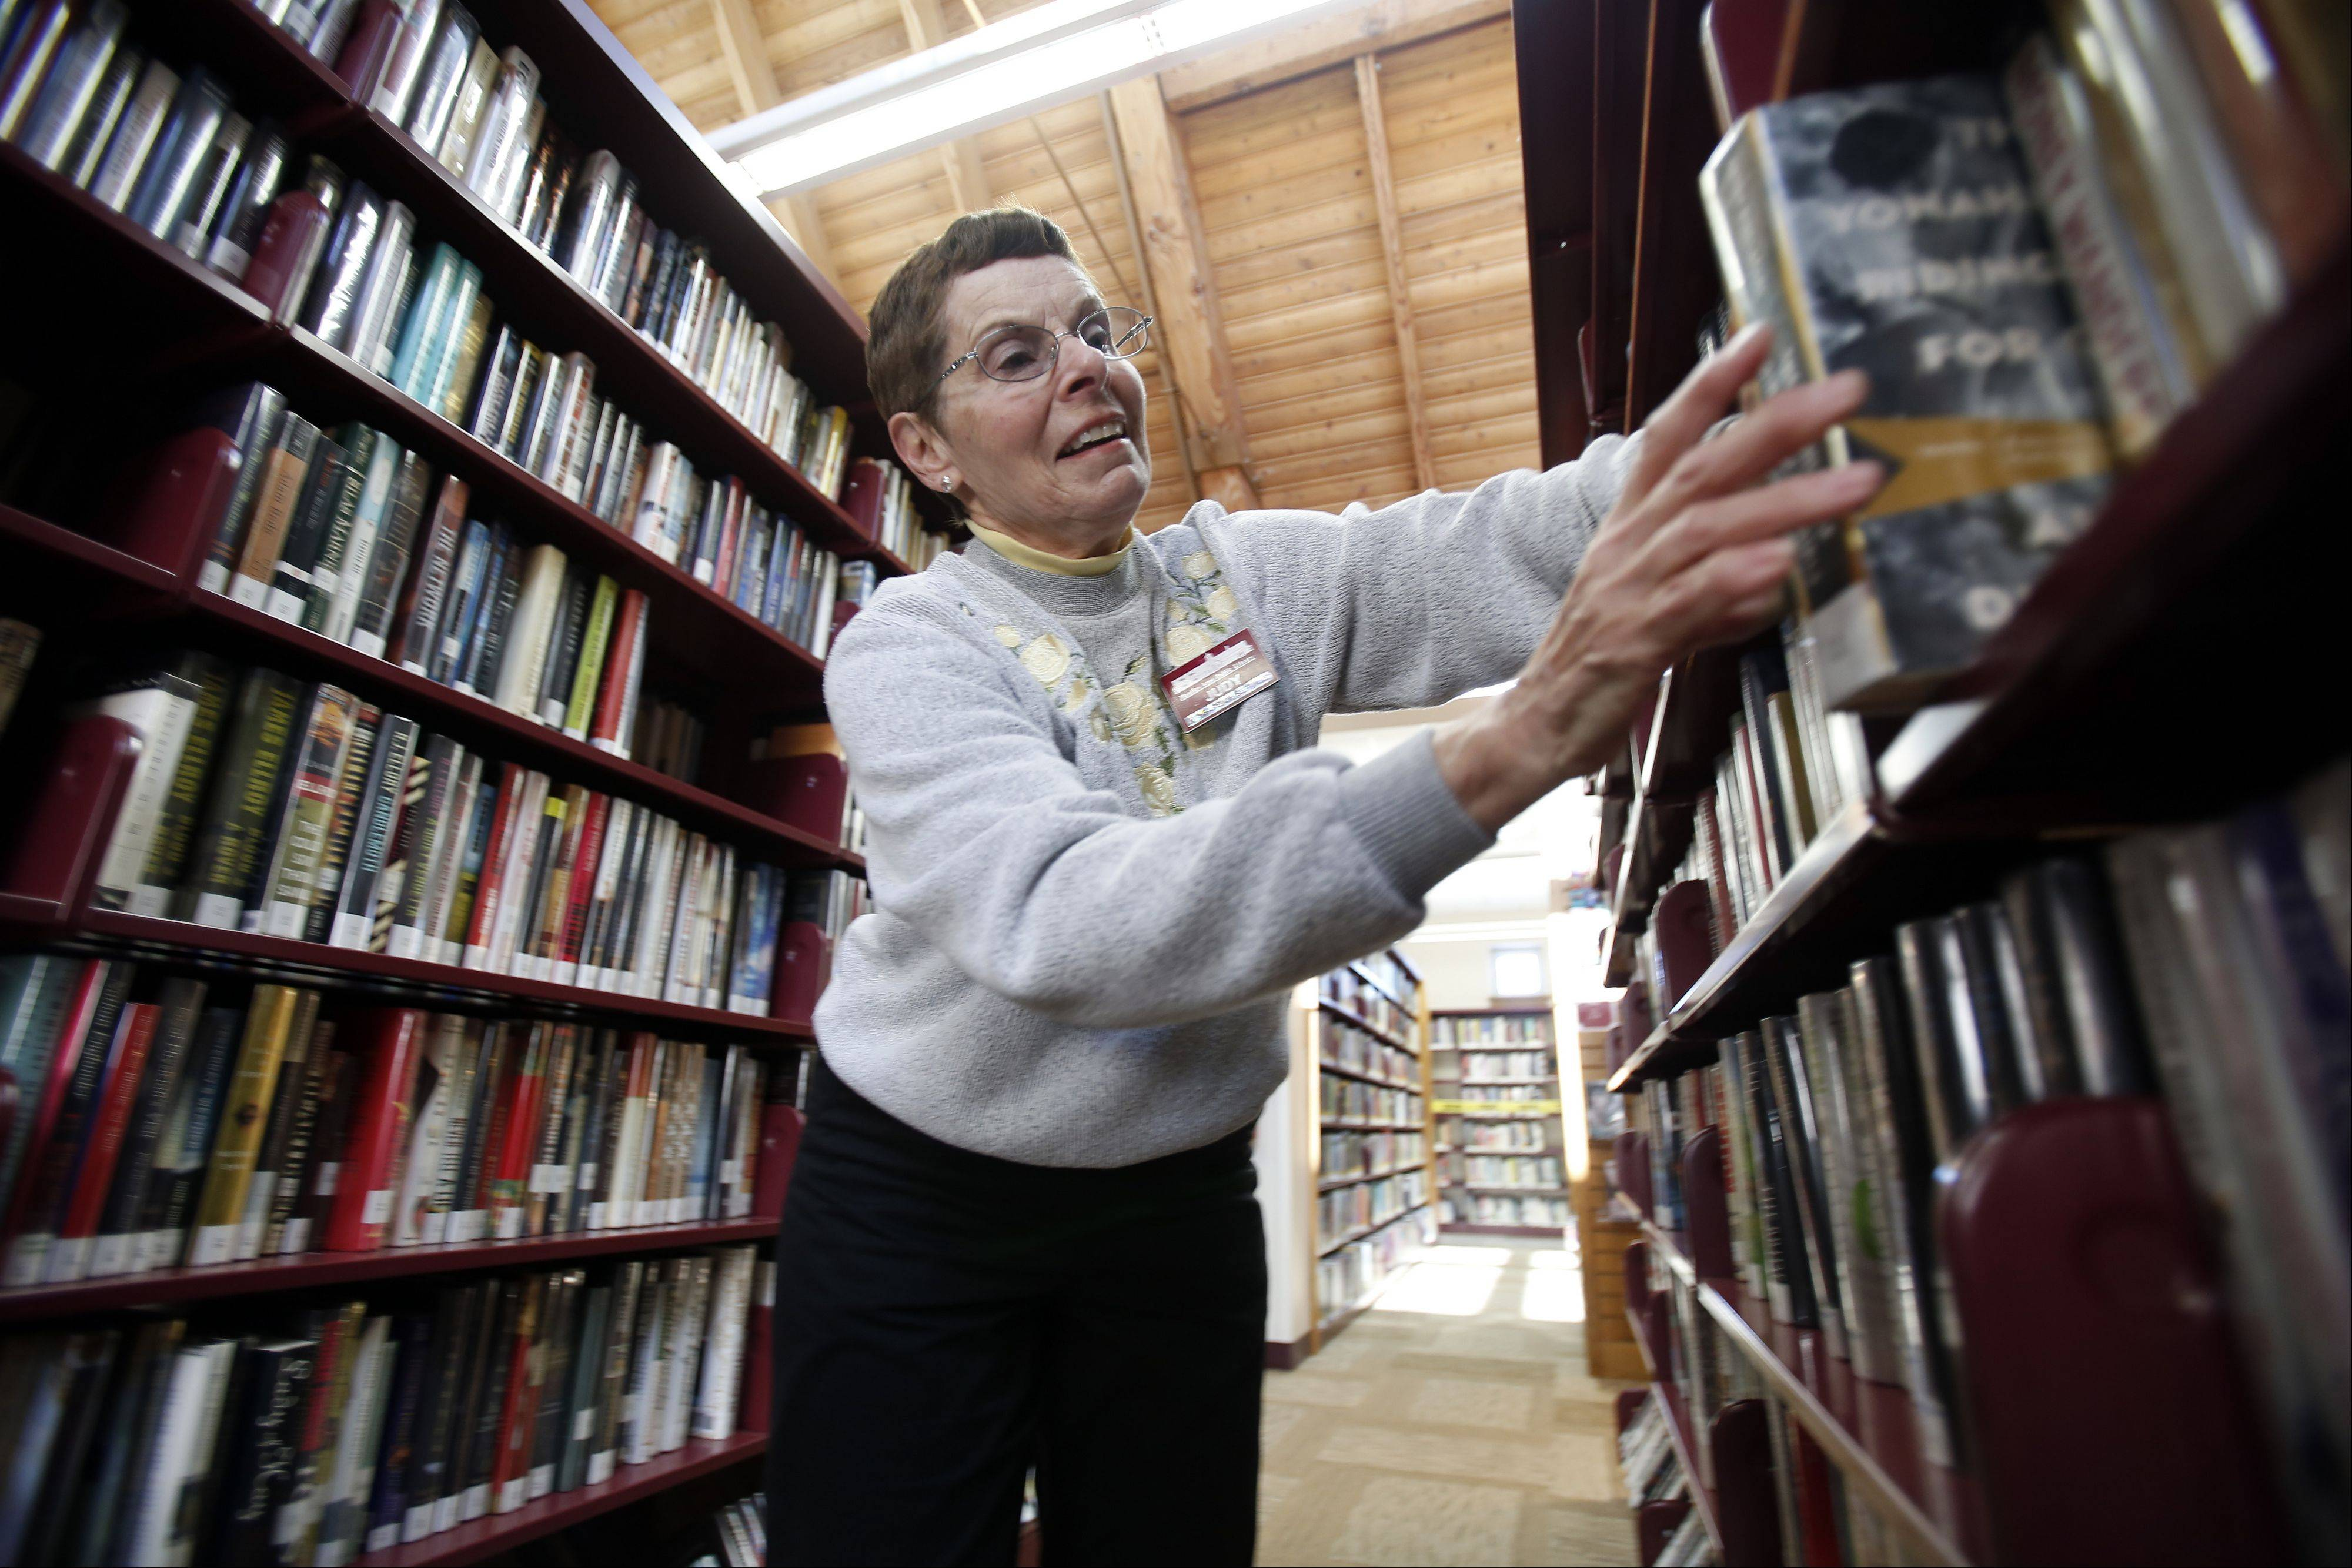 Judy Mulcahy restocks shelves at the Huntley Area Public Library, which celebrates its 25th anniversary this year.